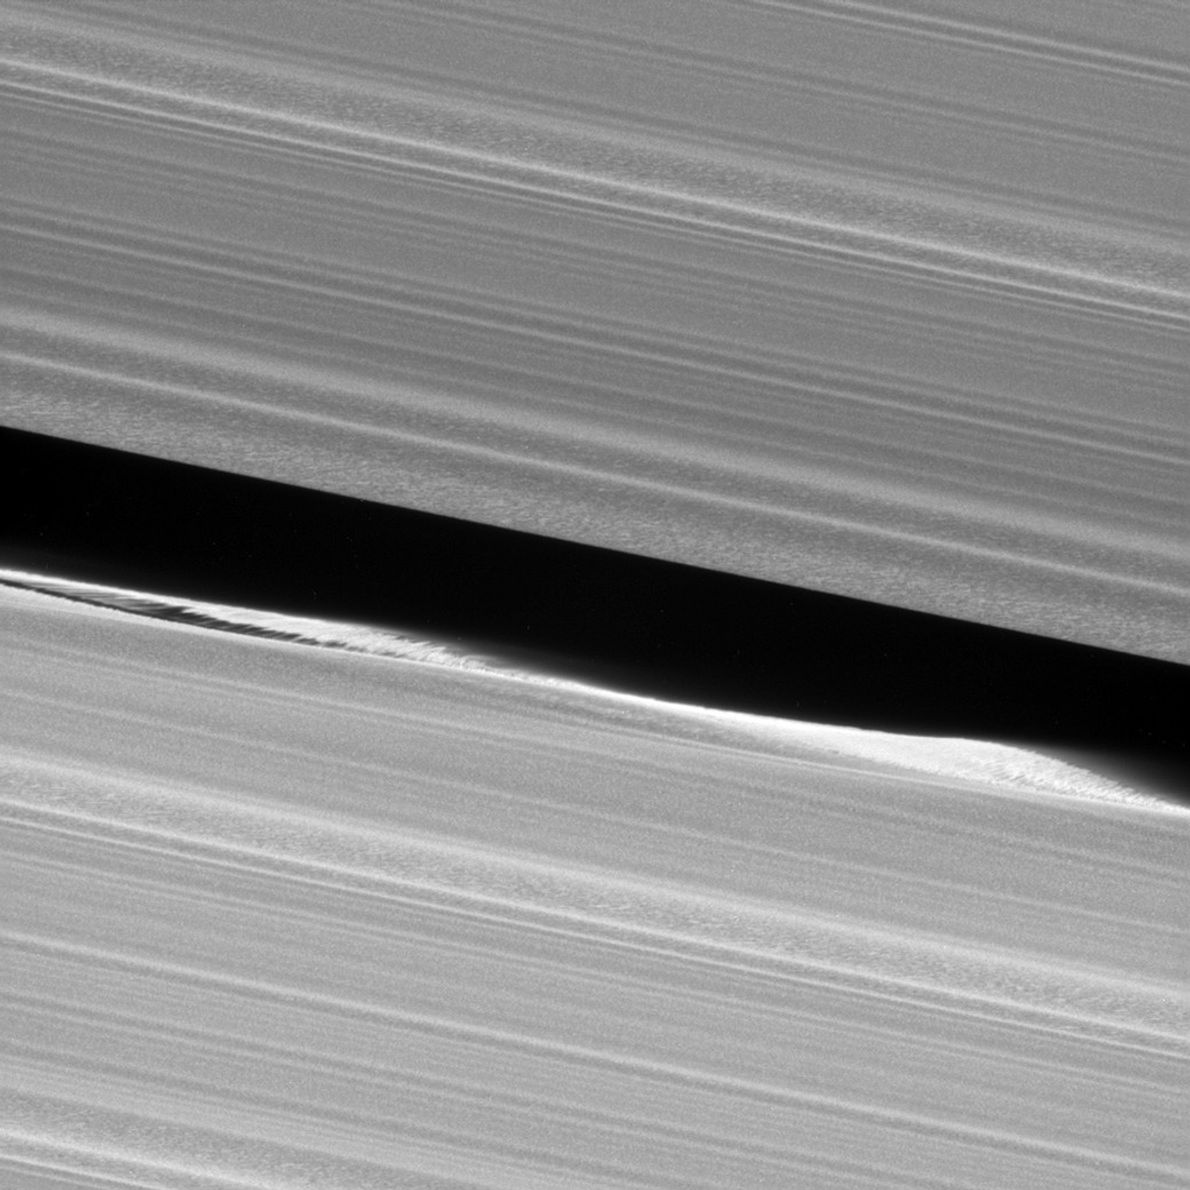 As Cassini prepared for its death dive into Saturn's atmosphere in 2017, it acquired unprecedented views ...